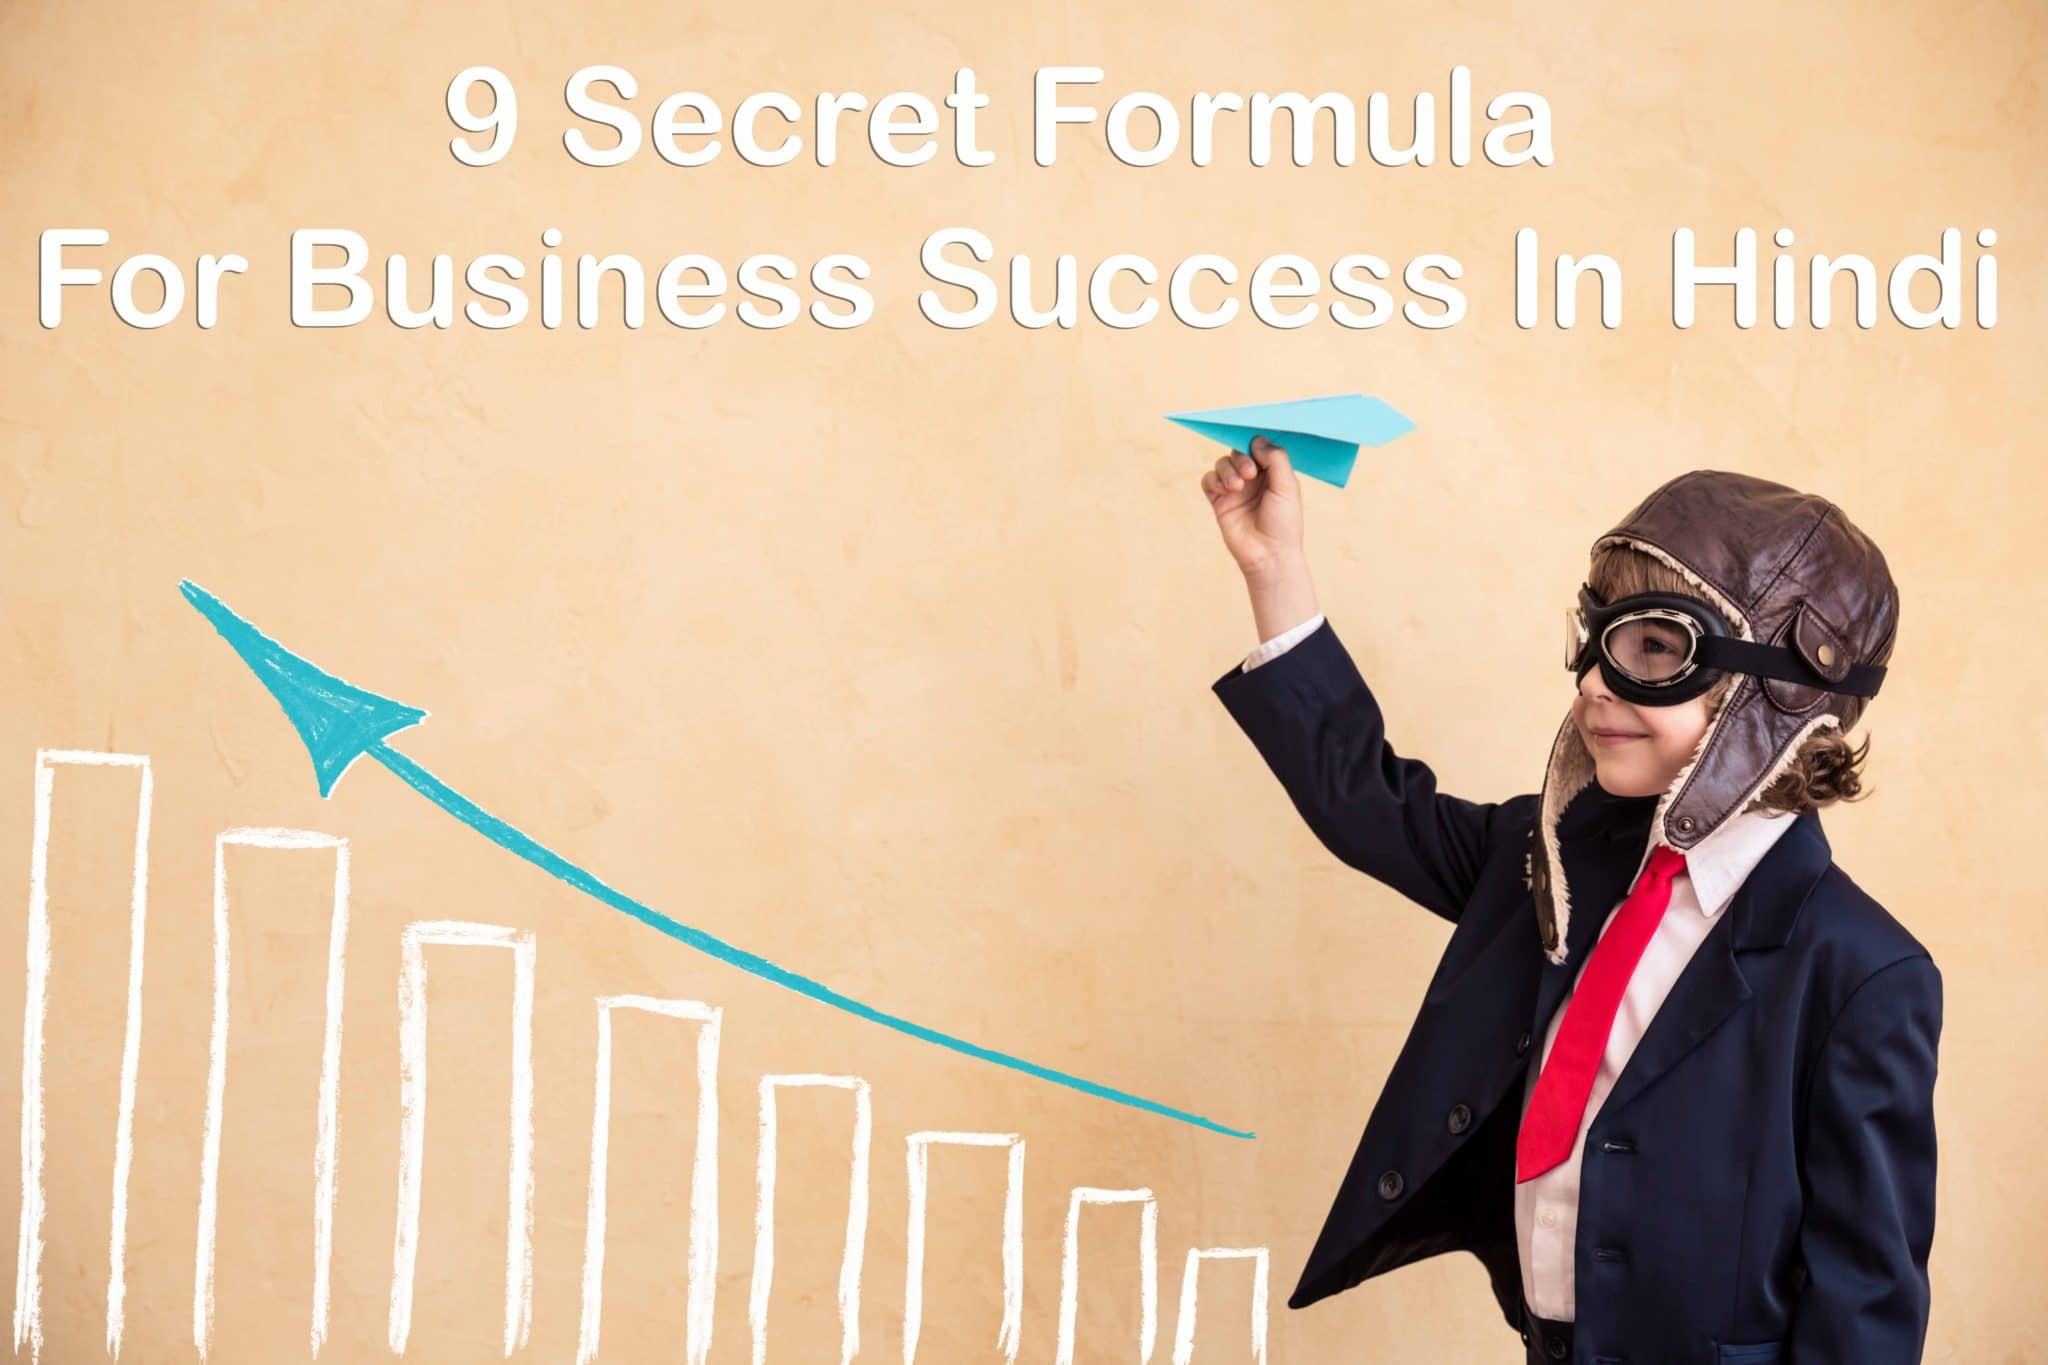 9 Secret Formula For Business Success In Hindi